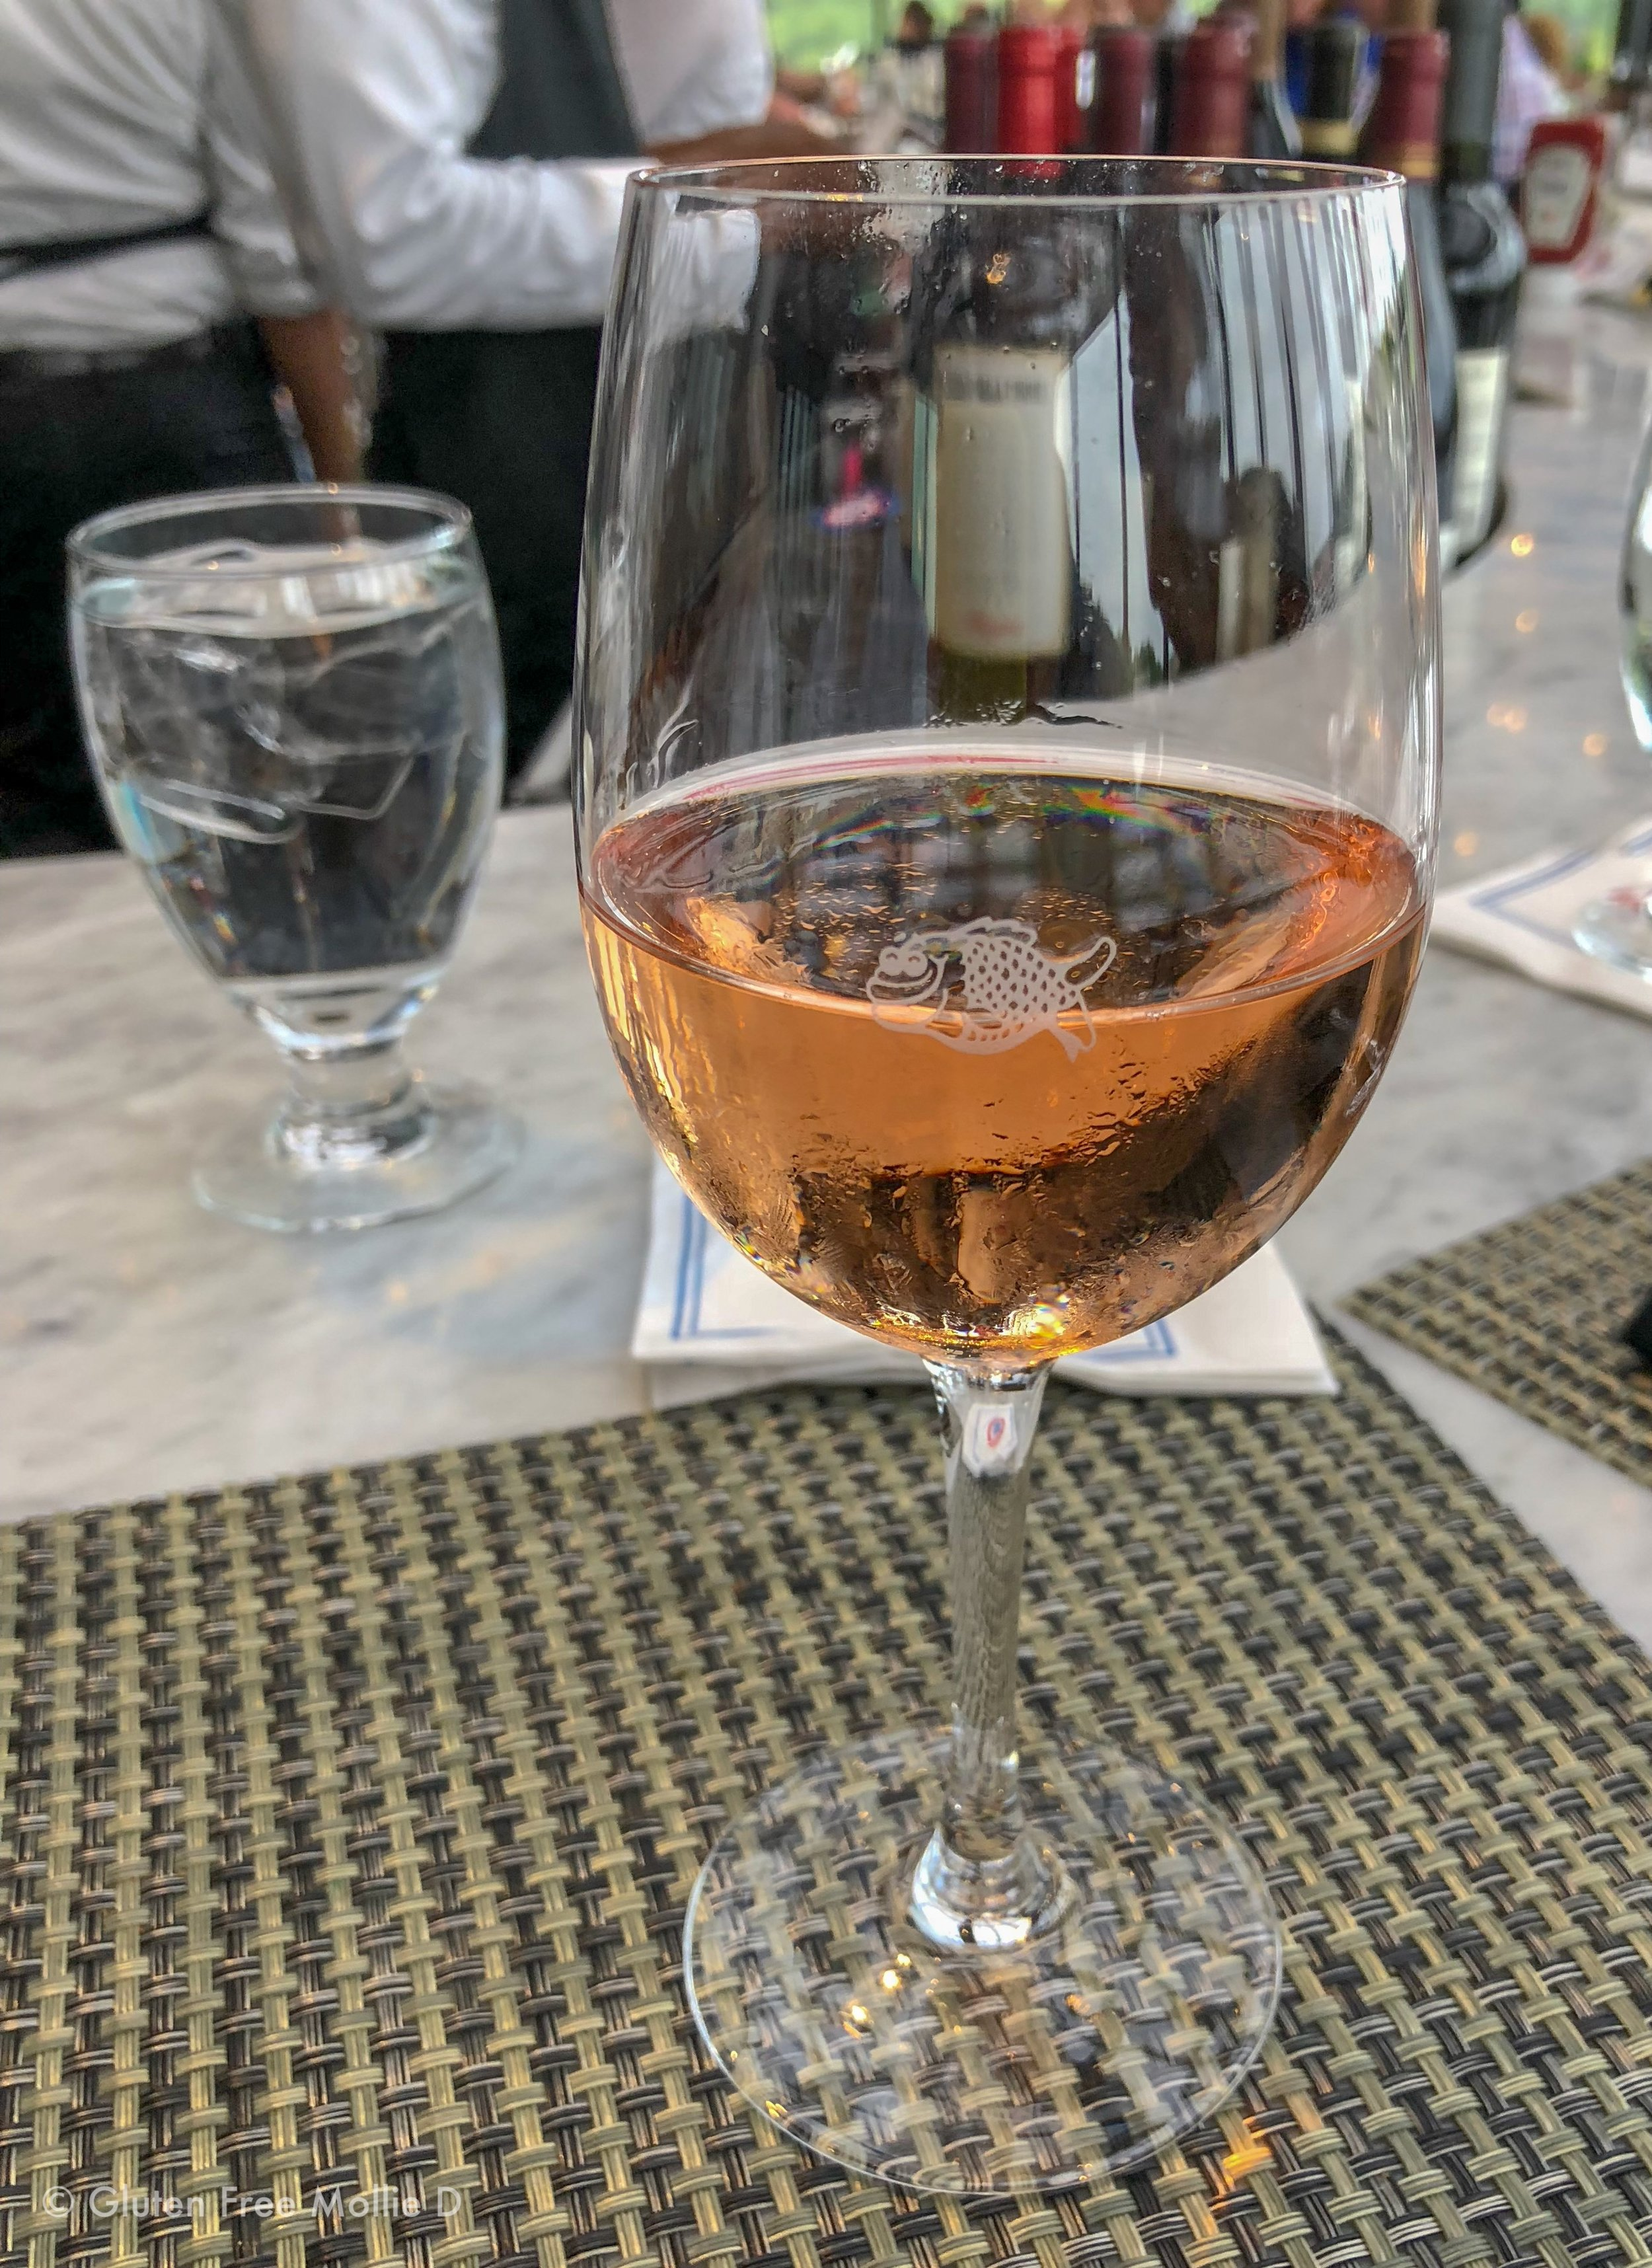 Post-shopping rosé; the joys of the weekend!